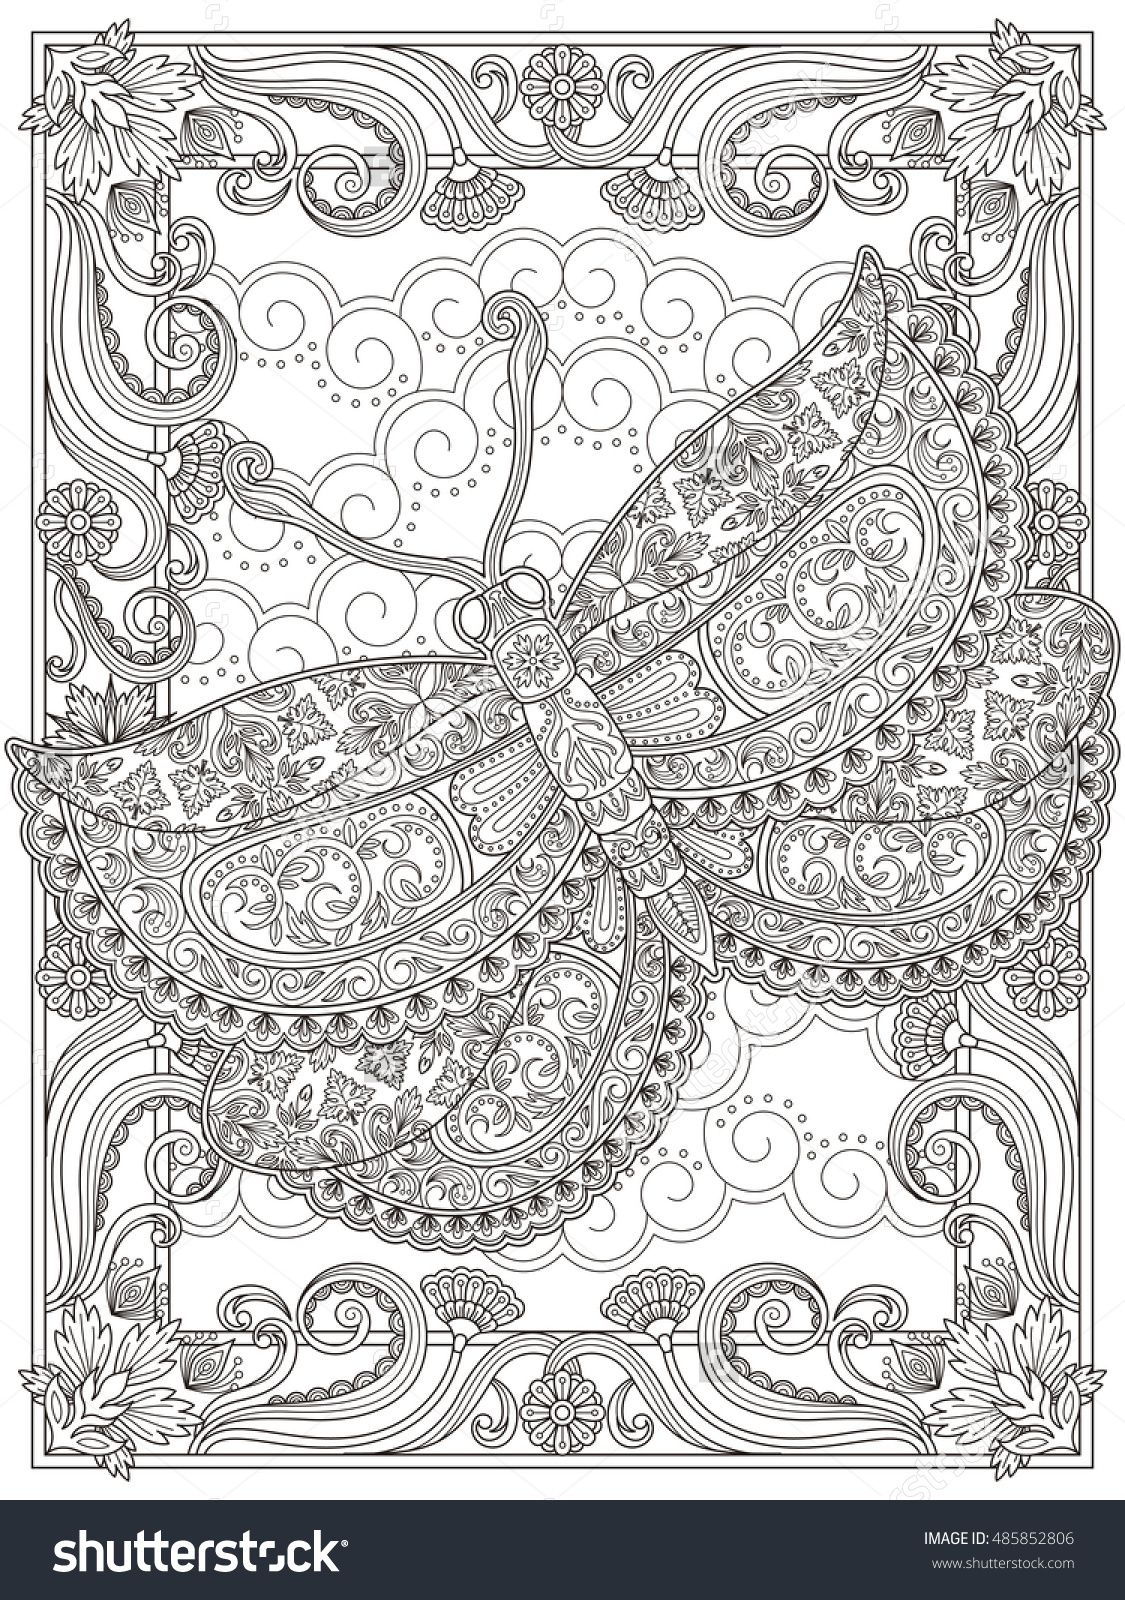 Graceful Adult Coloring Page Magnificent Moth With Floral Decorations Anti Stress Pattern For